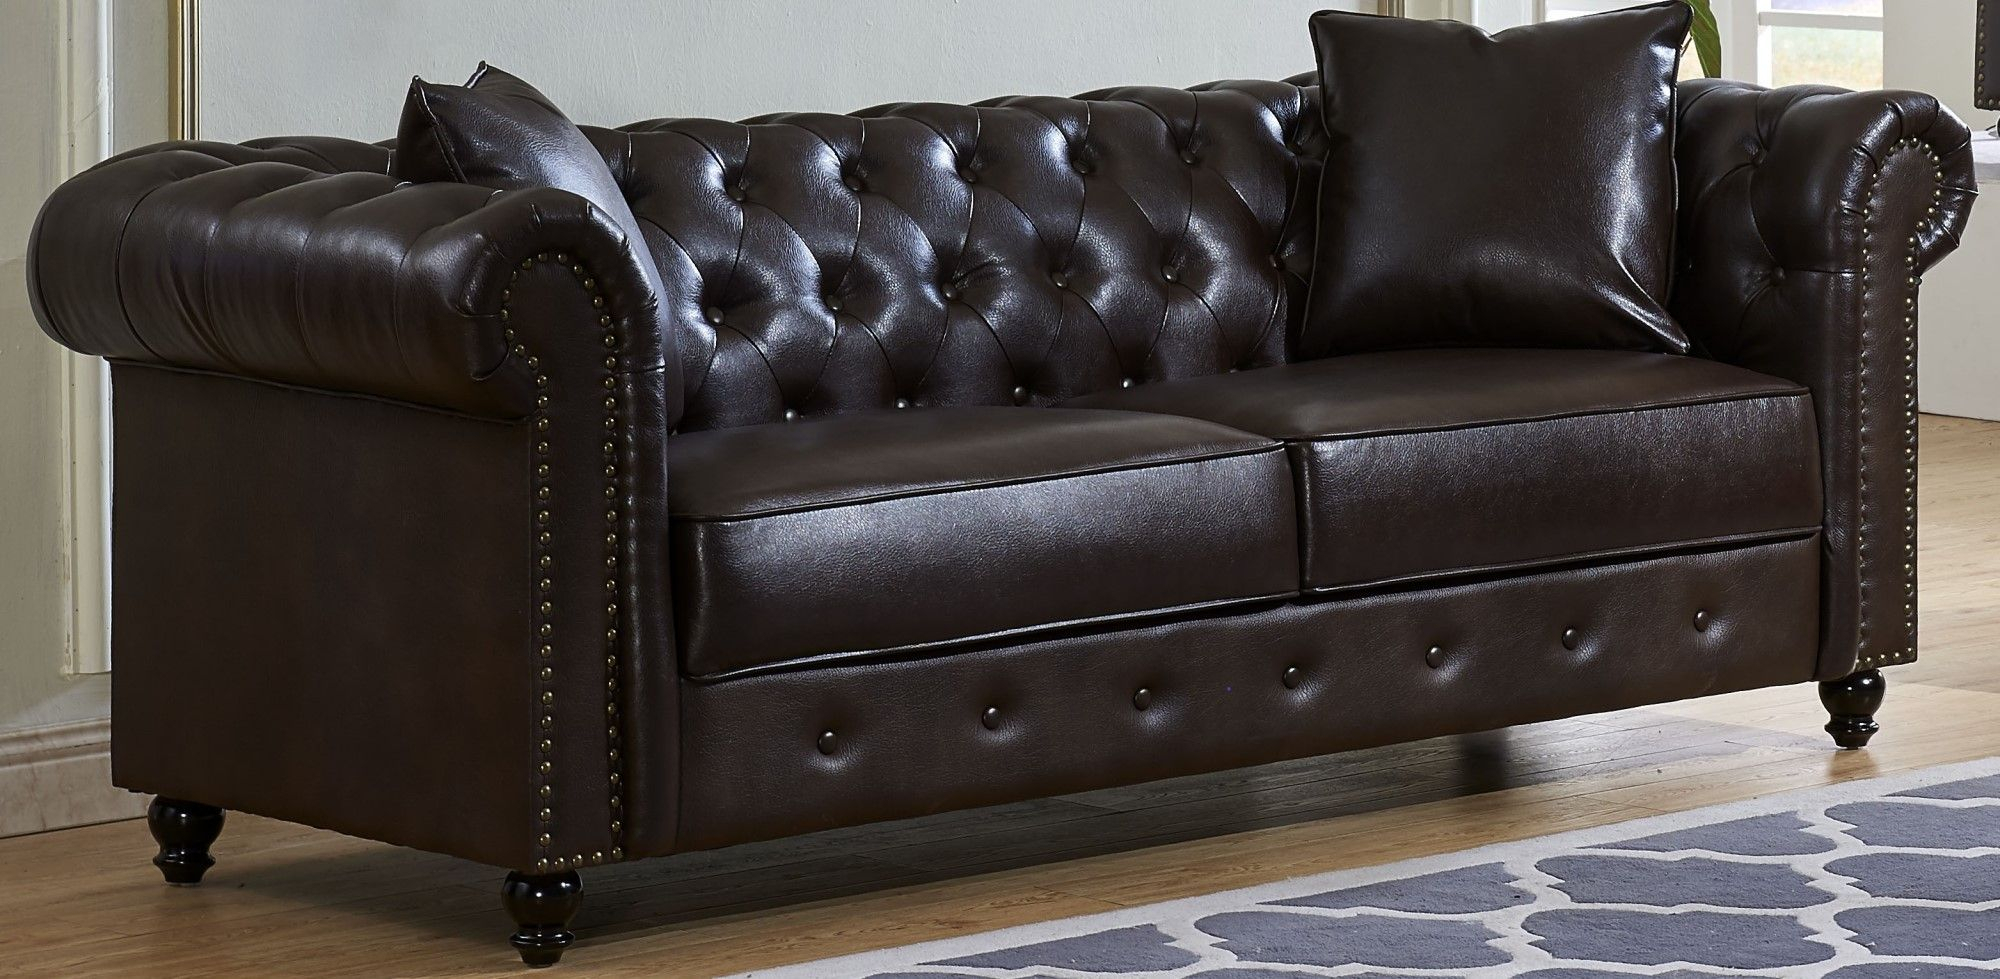 Salisbury Button Tufted Nailhead Trim Chesterfield Sofa In Throughout Leather Chesterfield Sofas (View 11 of 15)